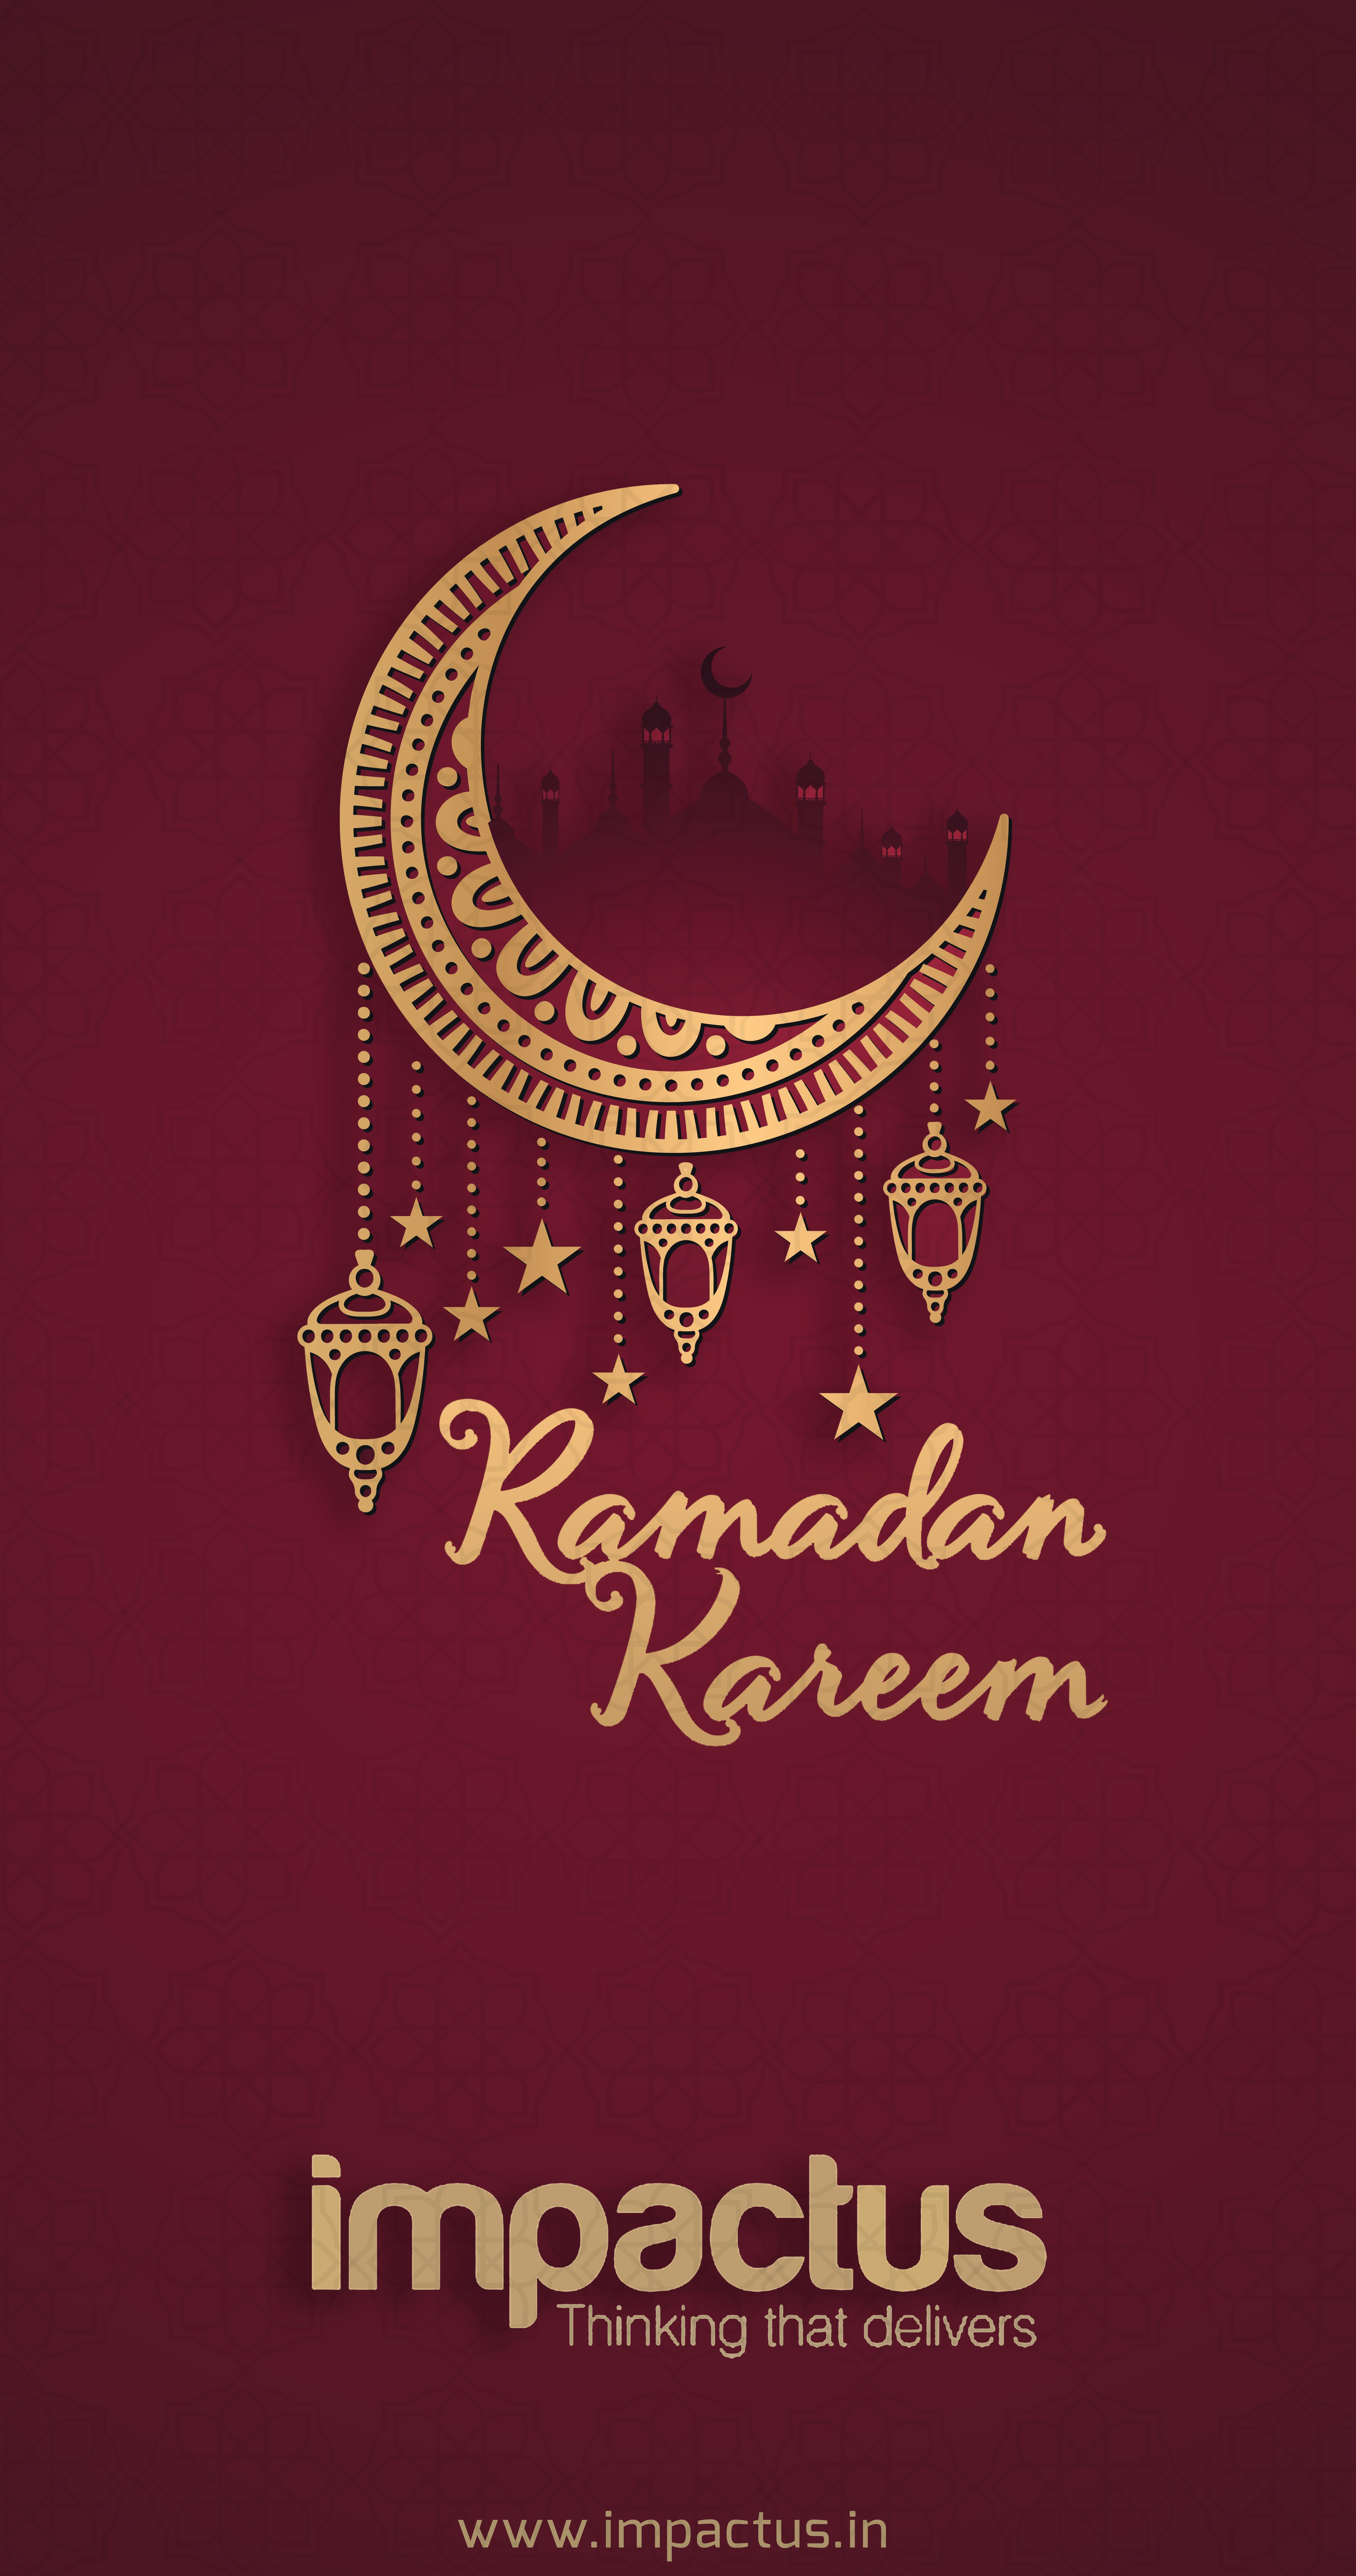 May the great Allah shower your path with light and